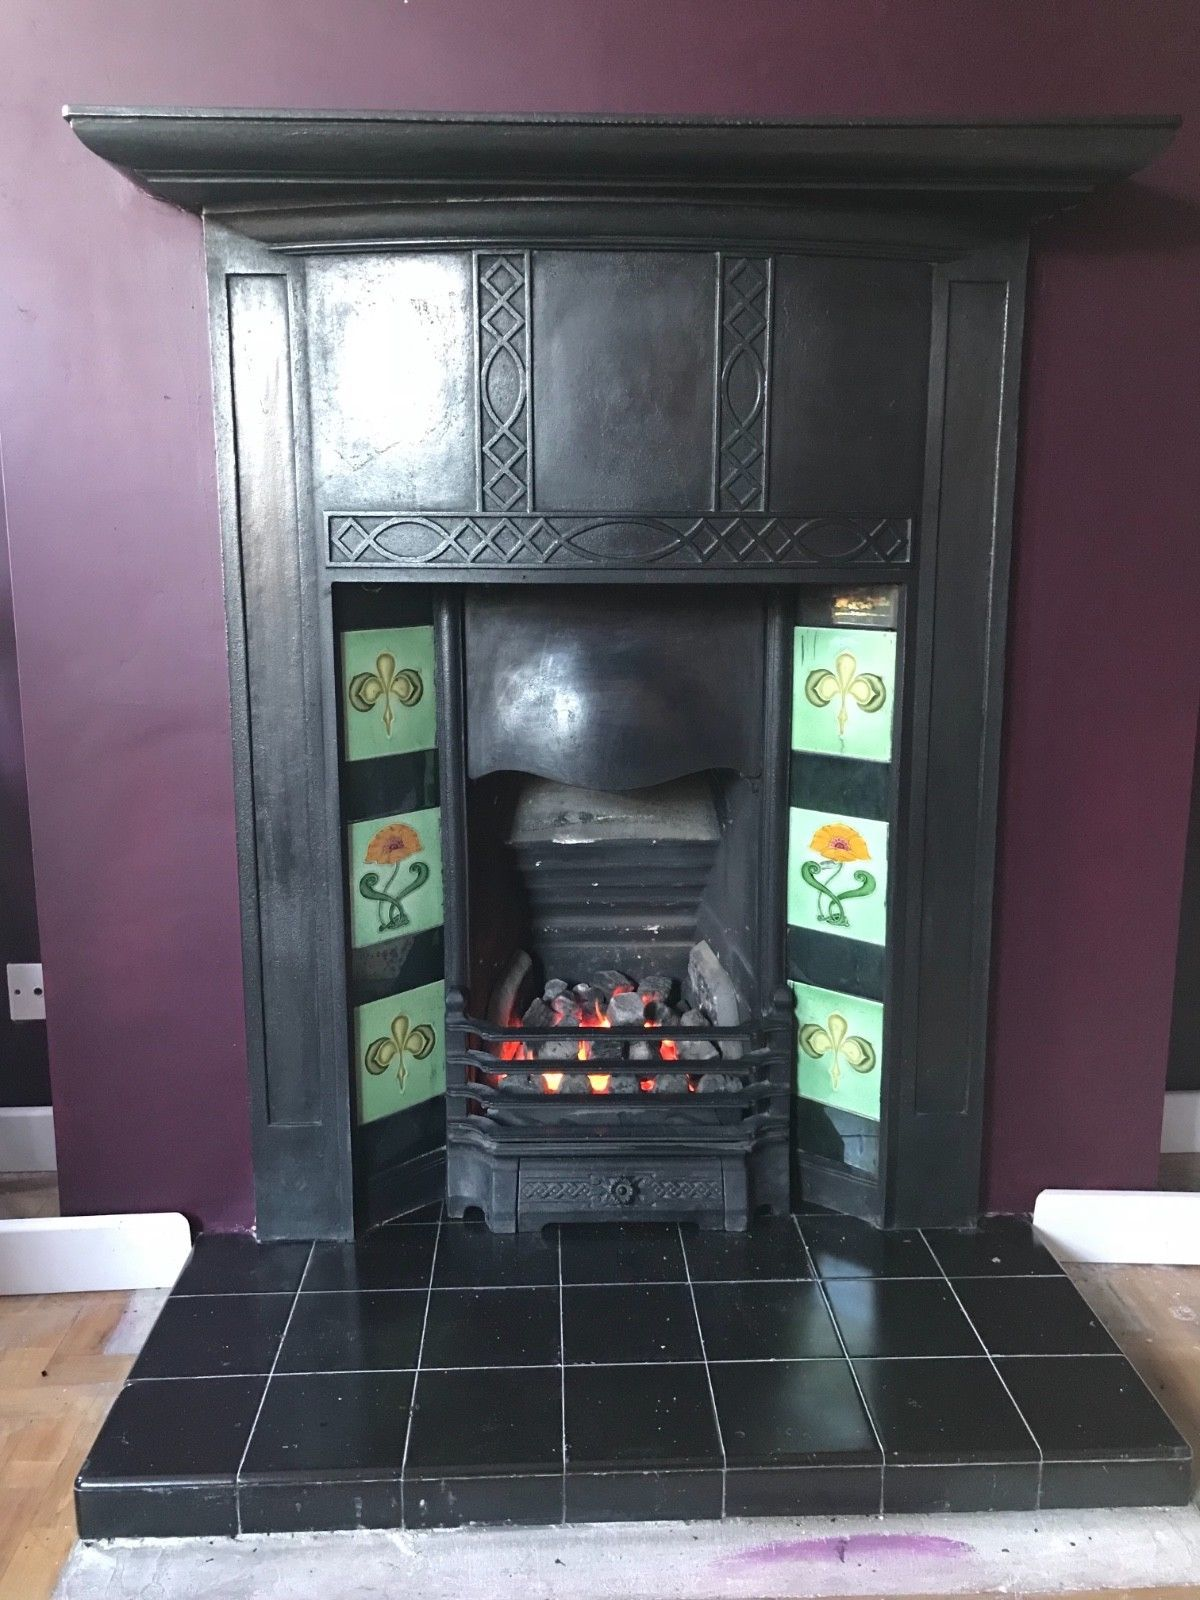 Antique Arts And Craft From Hull 85 Combination Fireplace Remove Tiles Add Fireback Re Polish In An Antique Black Tile Removal Antique Fireplace Fireplace